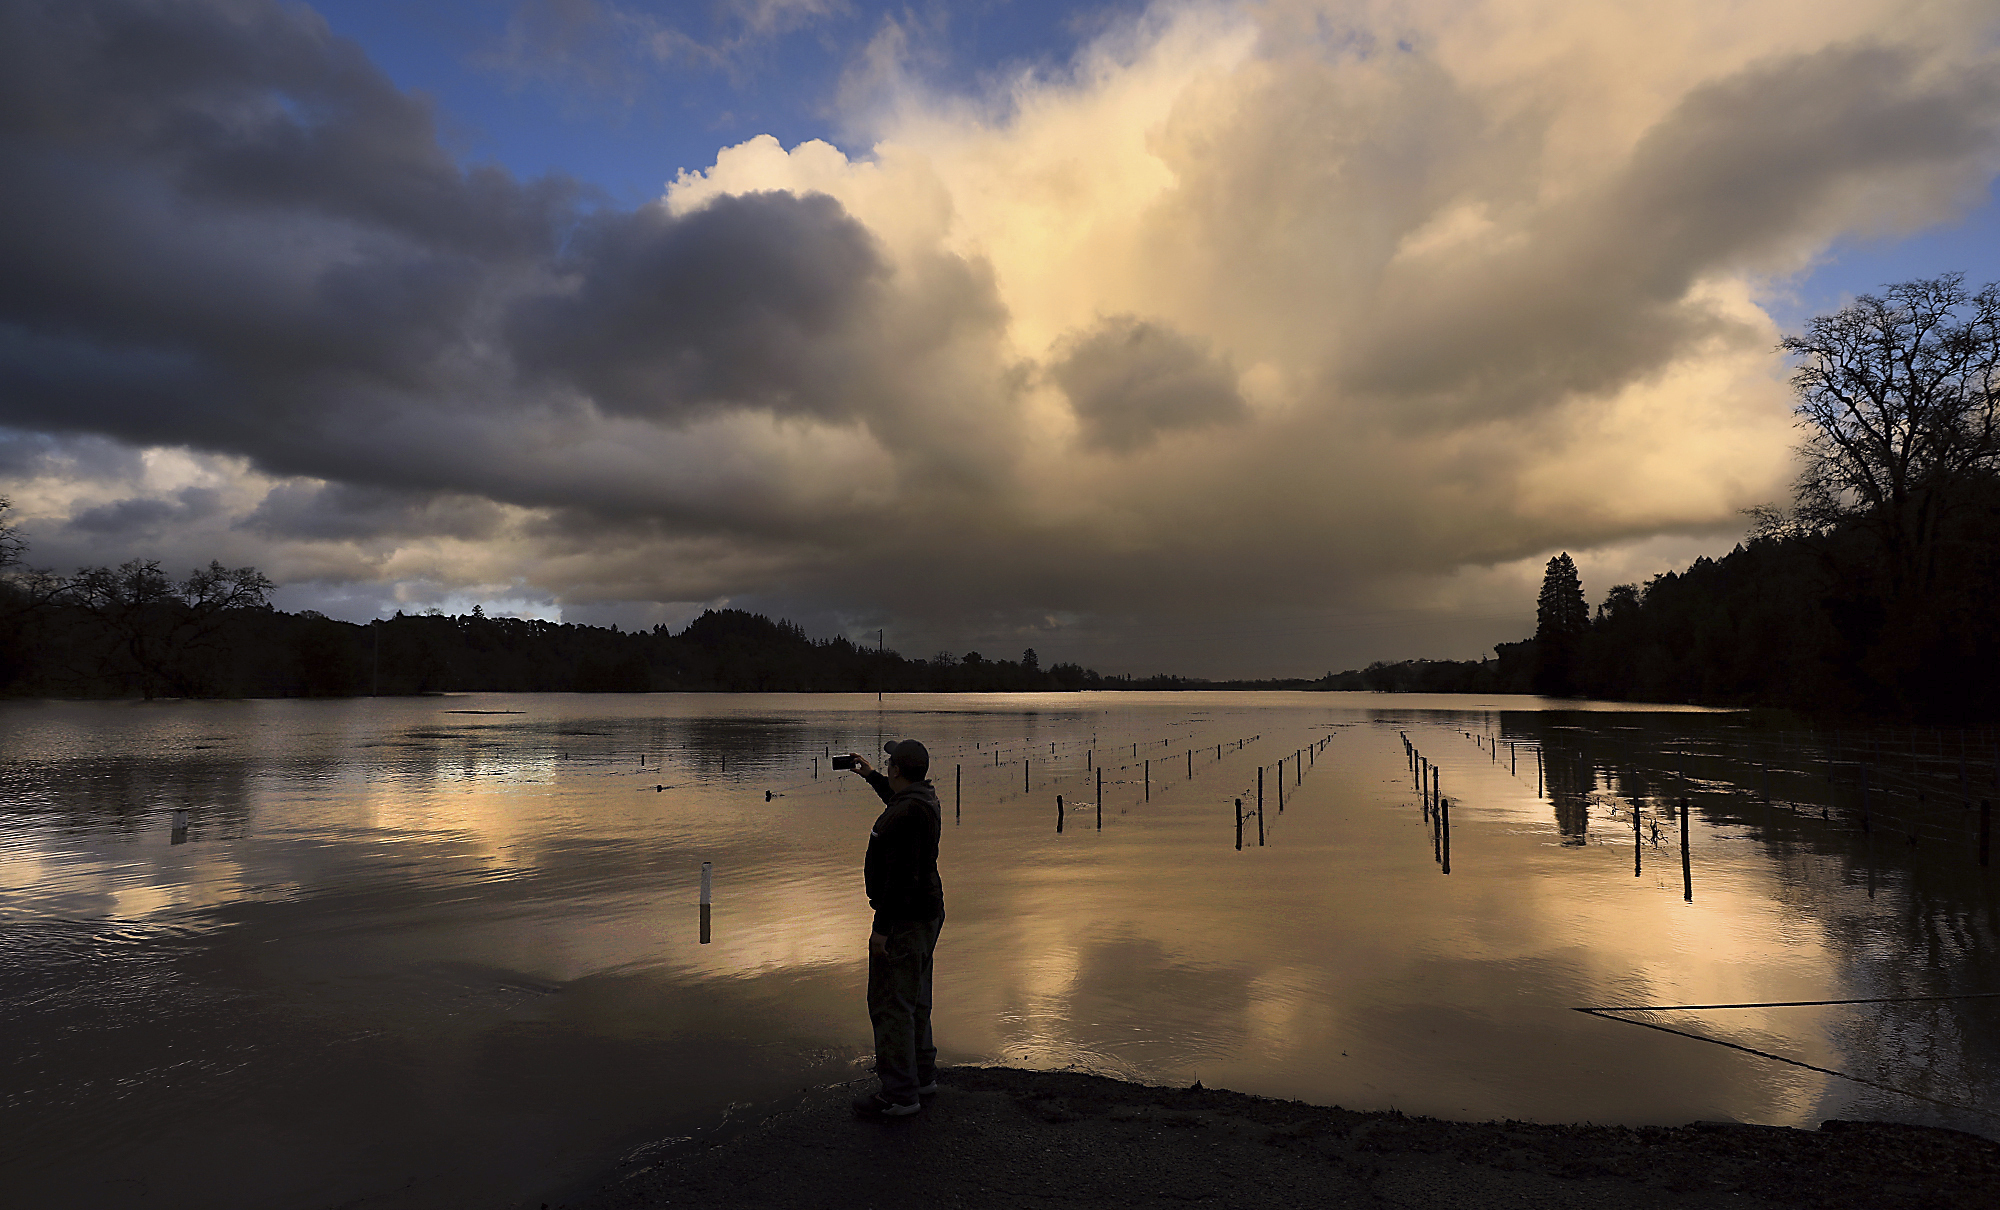 Lightning, thunder, hail and sunshine combine for an unpredictable afternoon of Bay Area weather